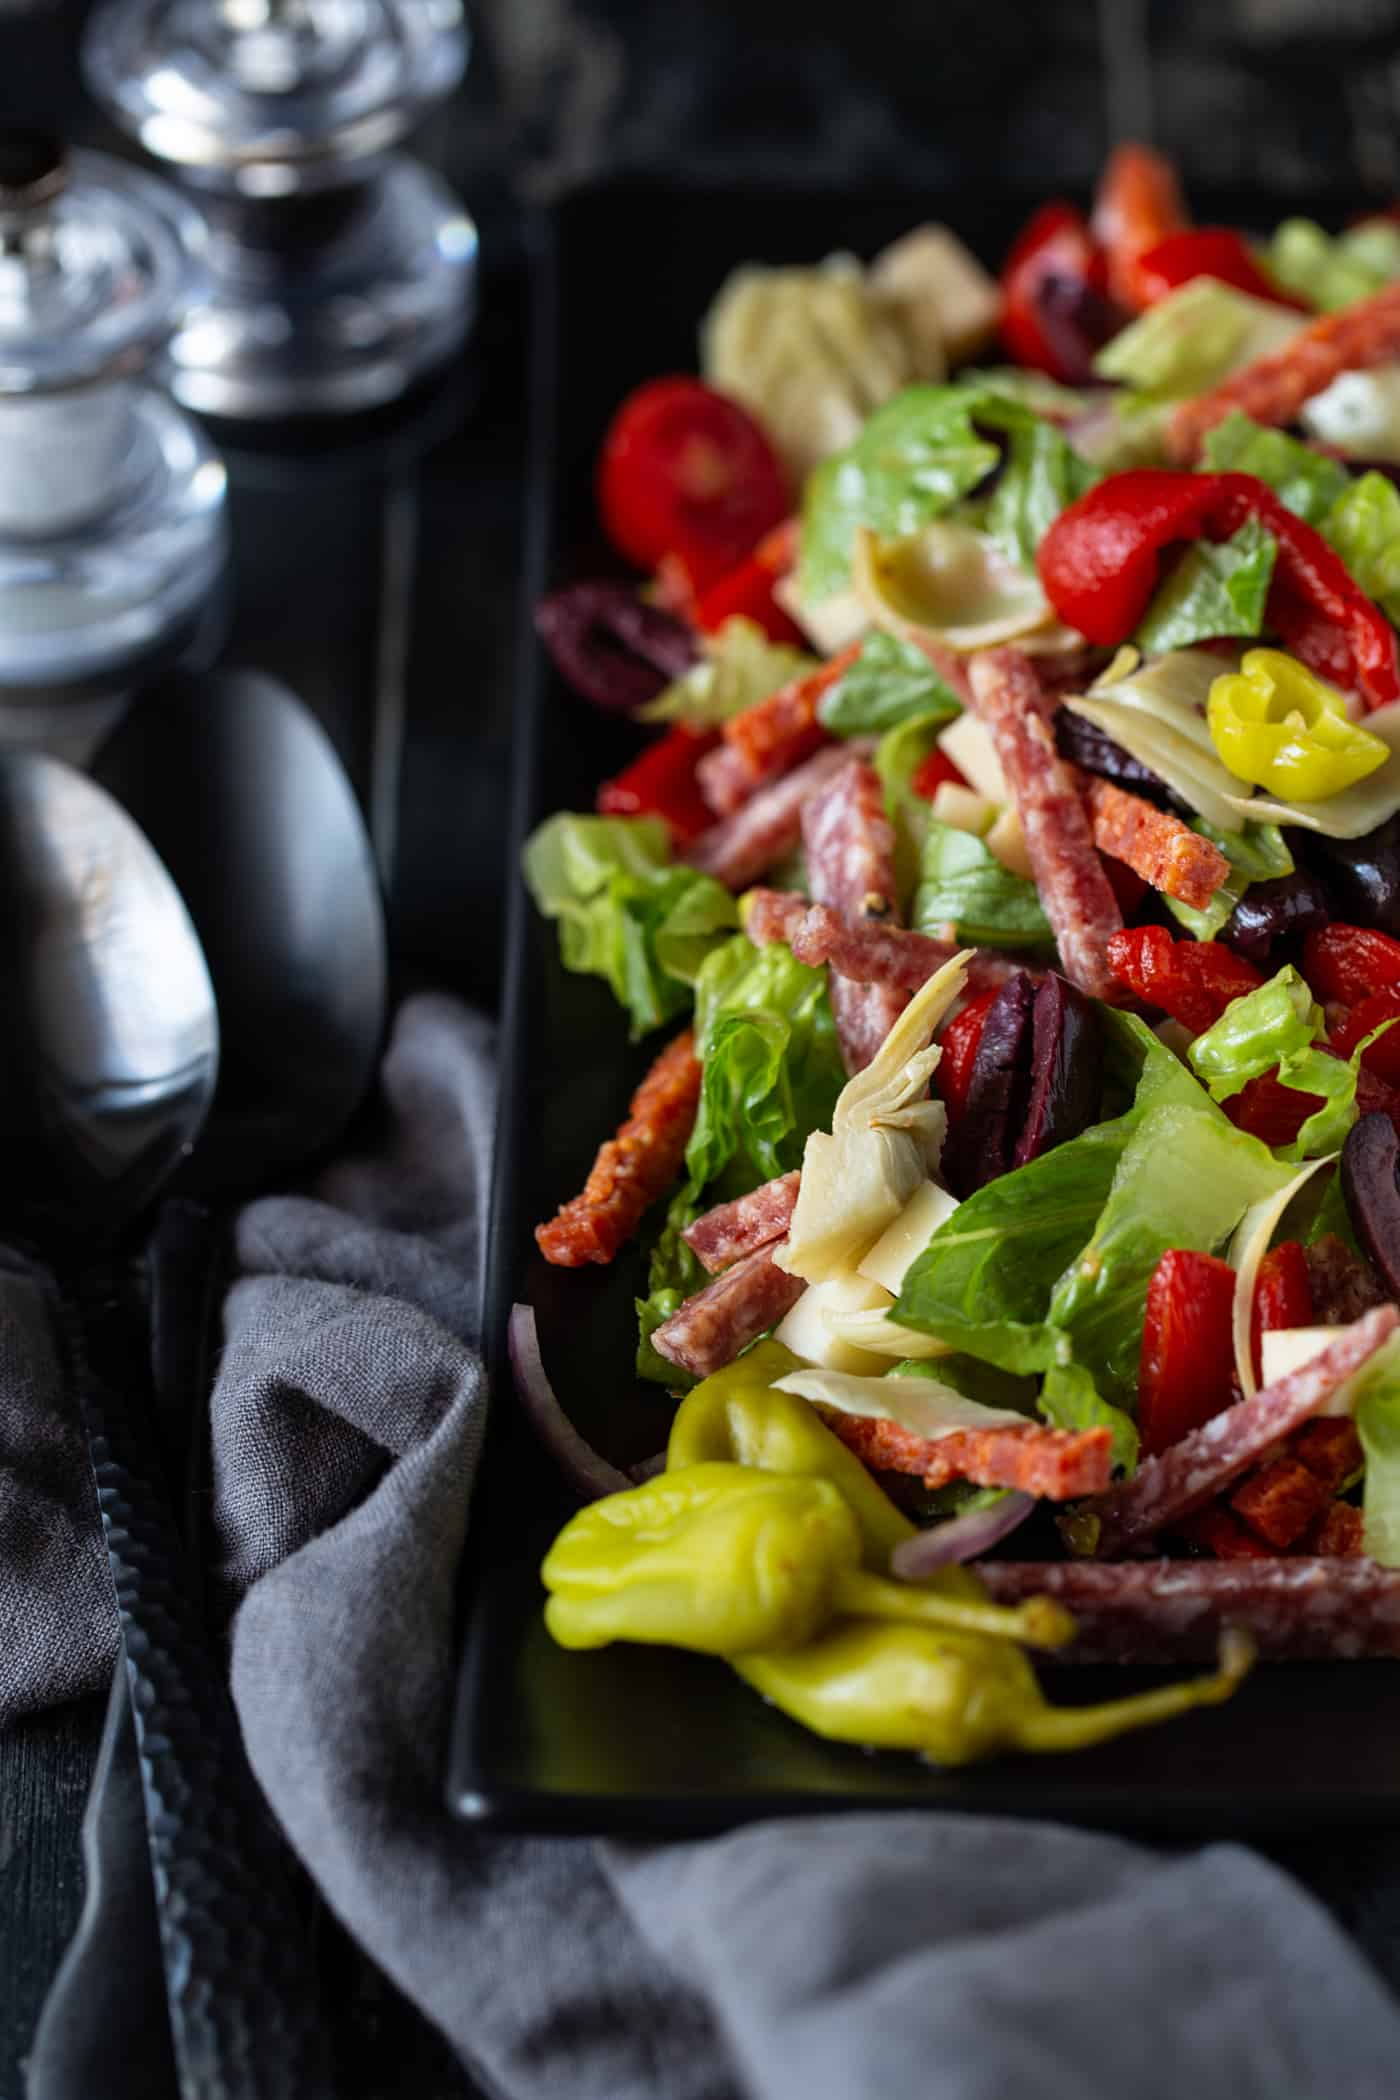 Top down image of Antipasto Salad with Red wine vinaigrette on a dark plate with a spoon for serving.